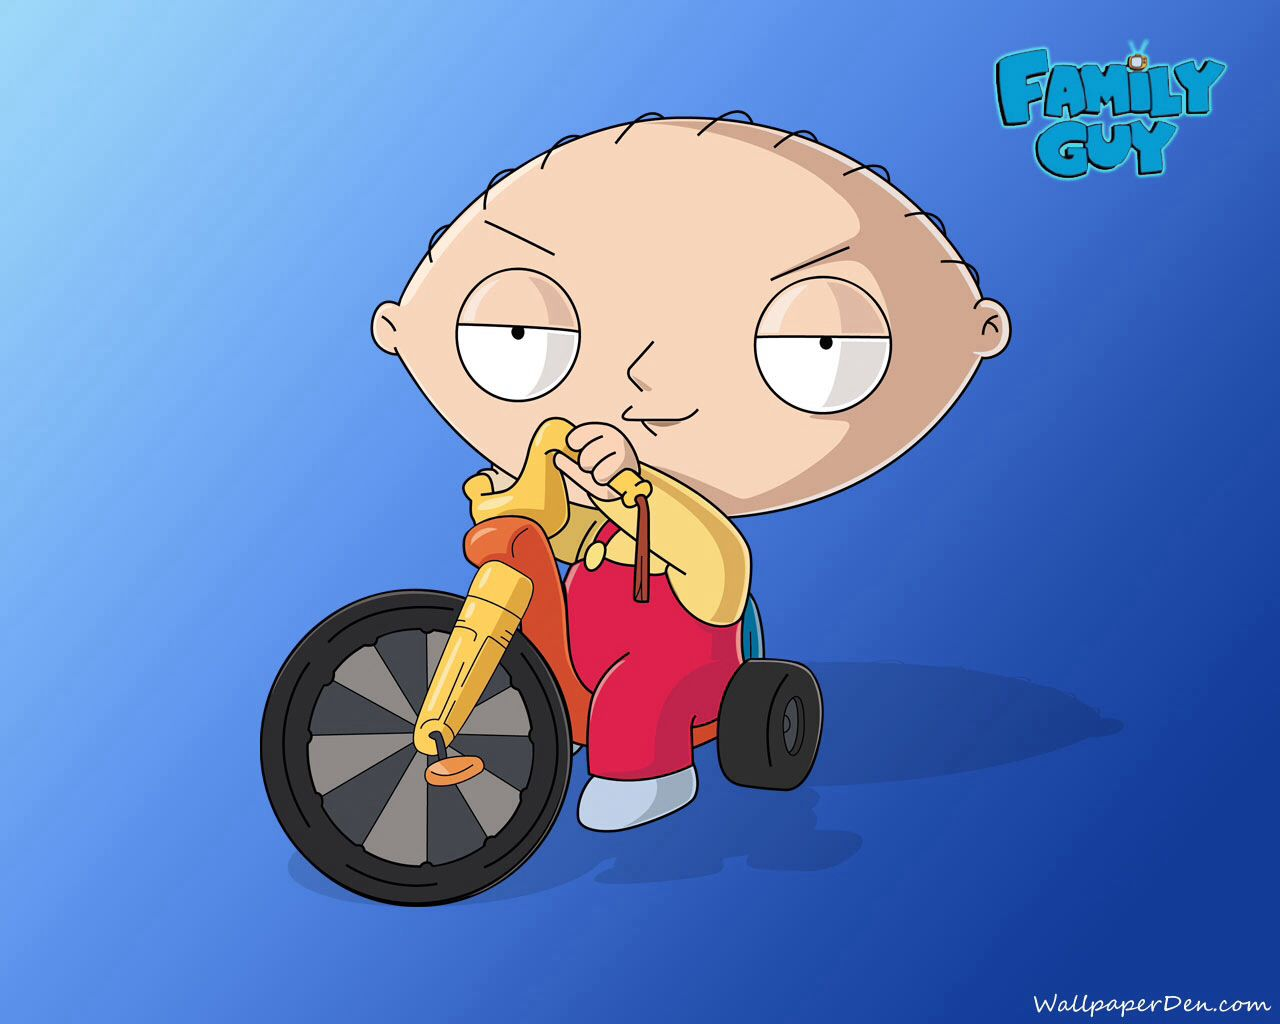 Stewie | Subscribe | Pinterest